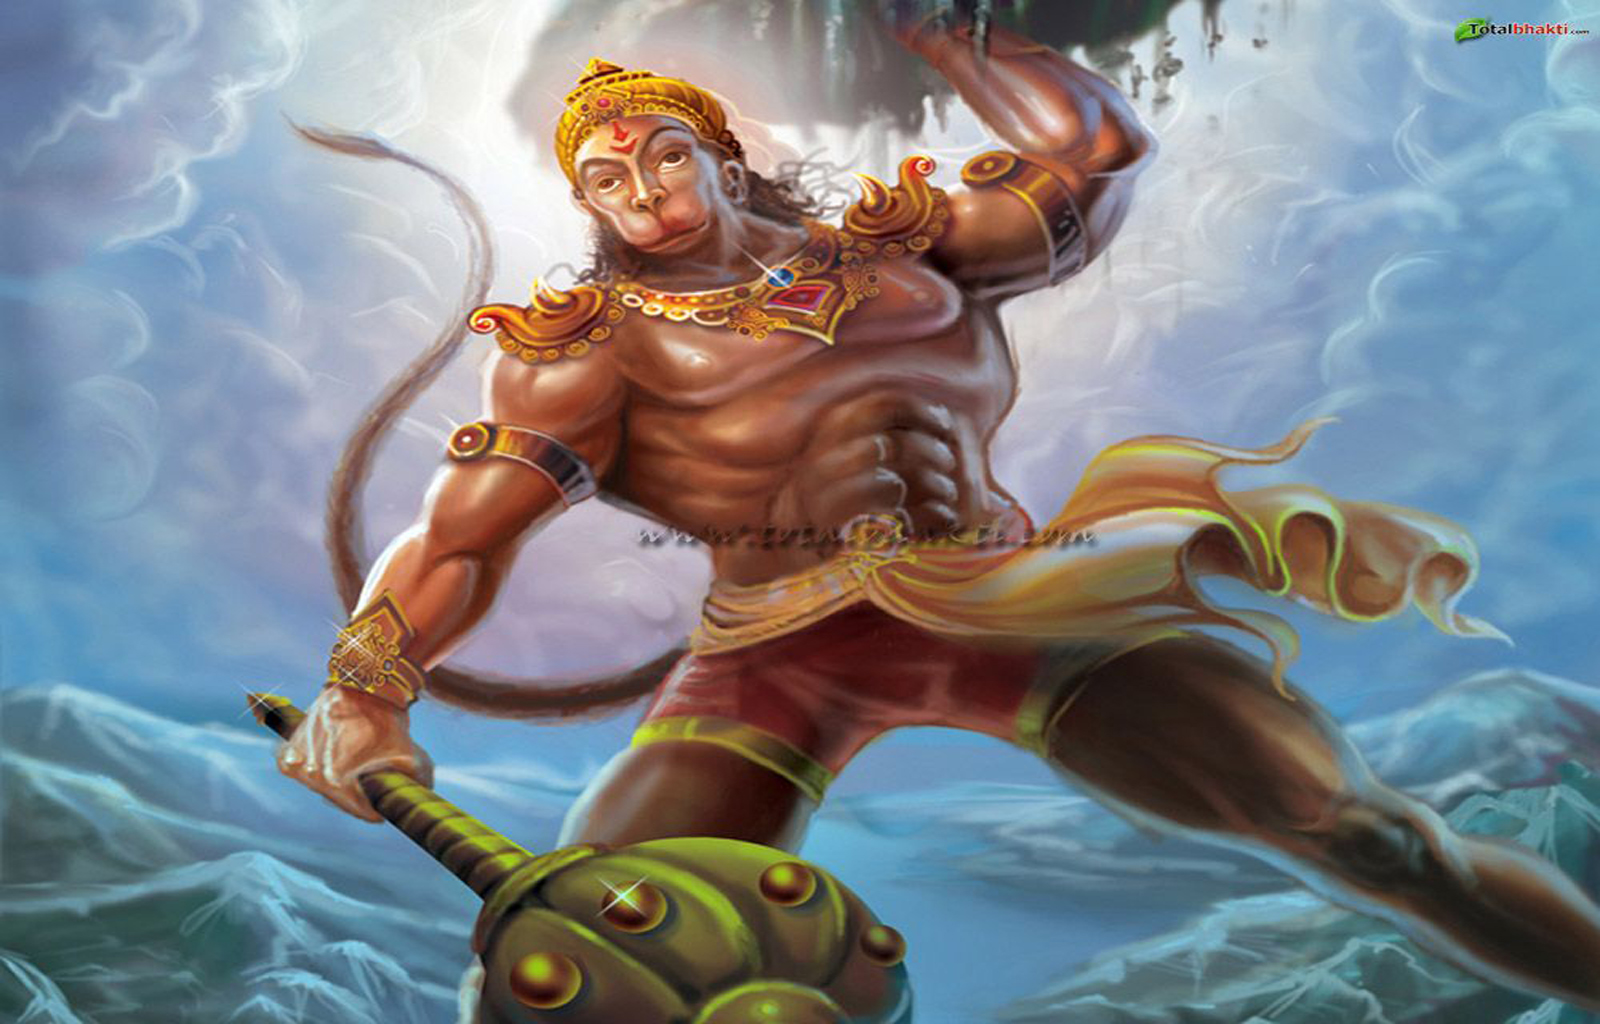 wallpaper jai hanuman wallpaper hanuman wallpaper hanuman ji wallpaper 1600x1024